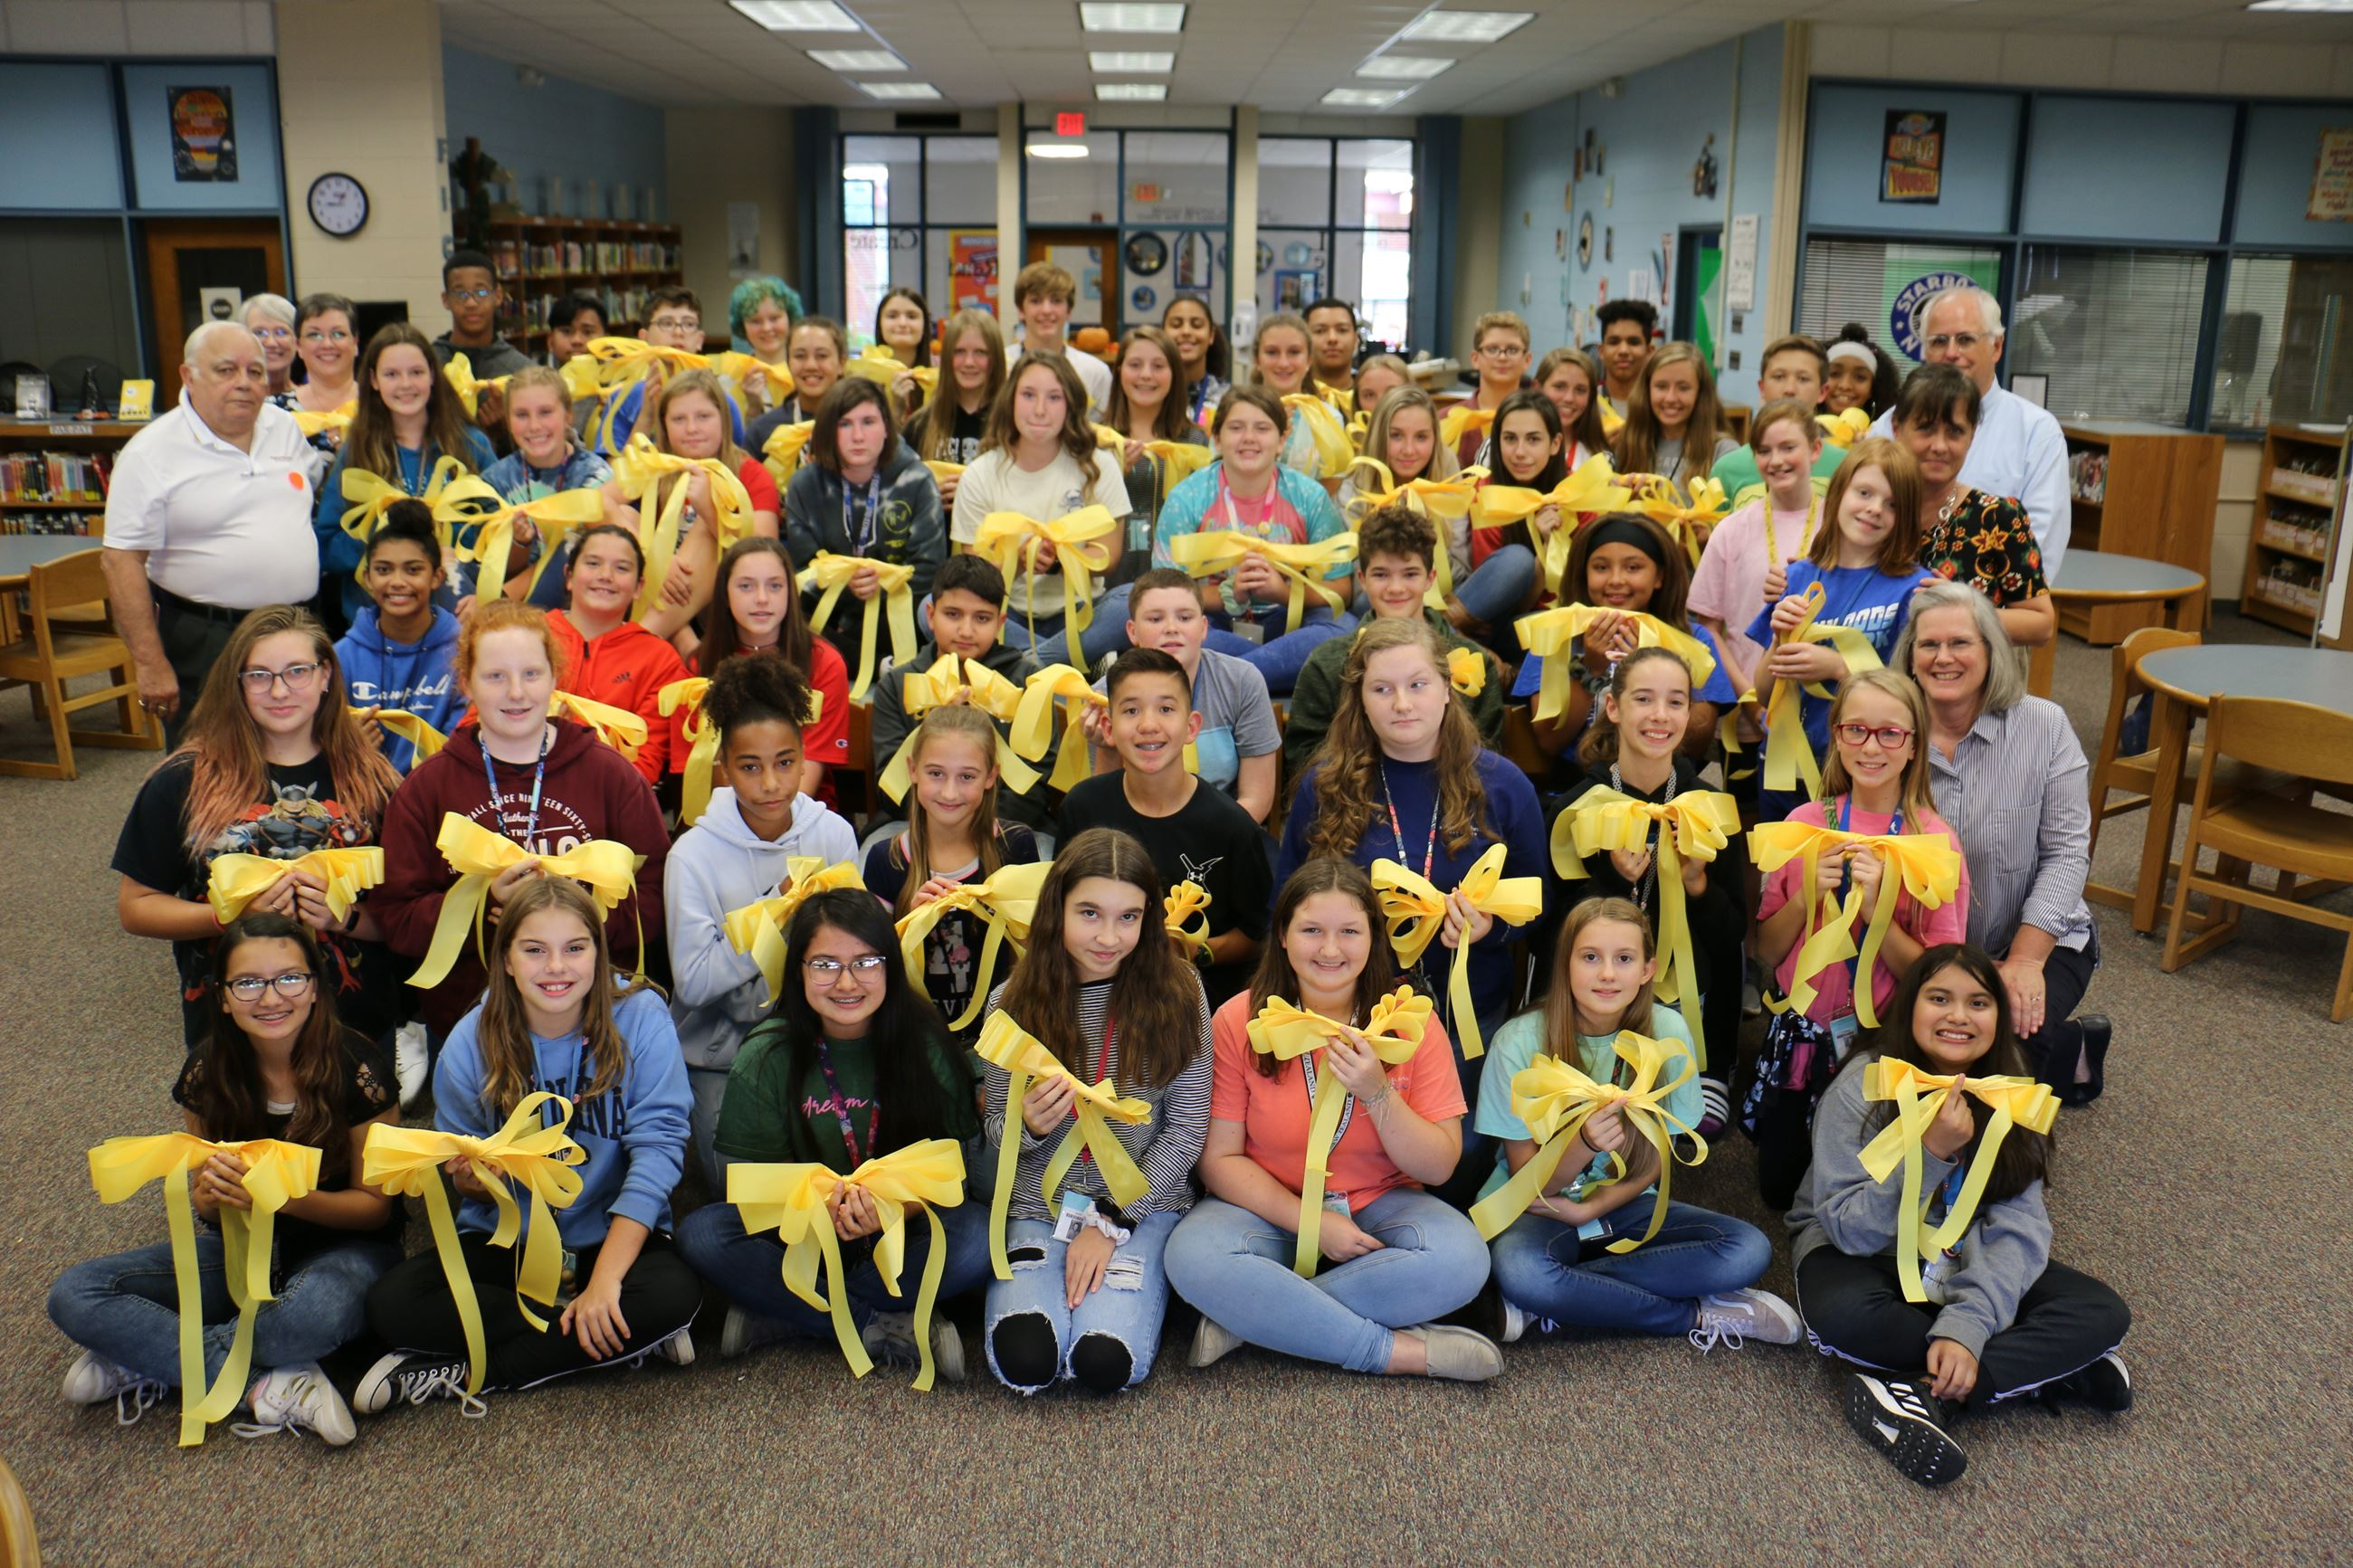 2019-10-NorthwoodsMiddle-YellowRibbons